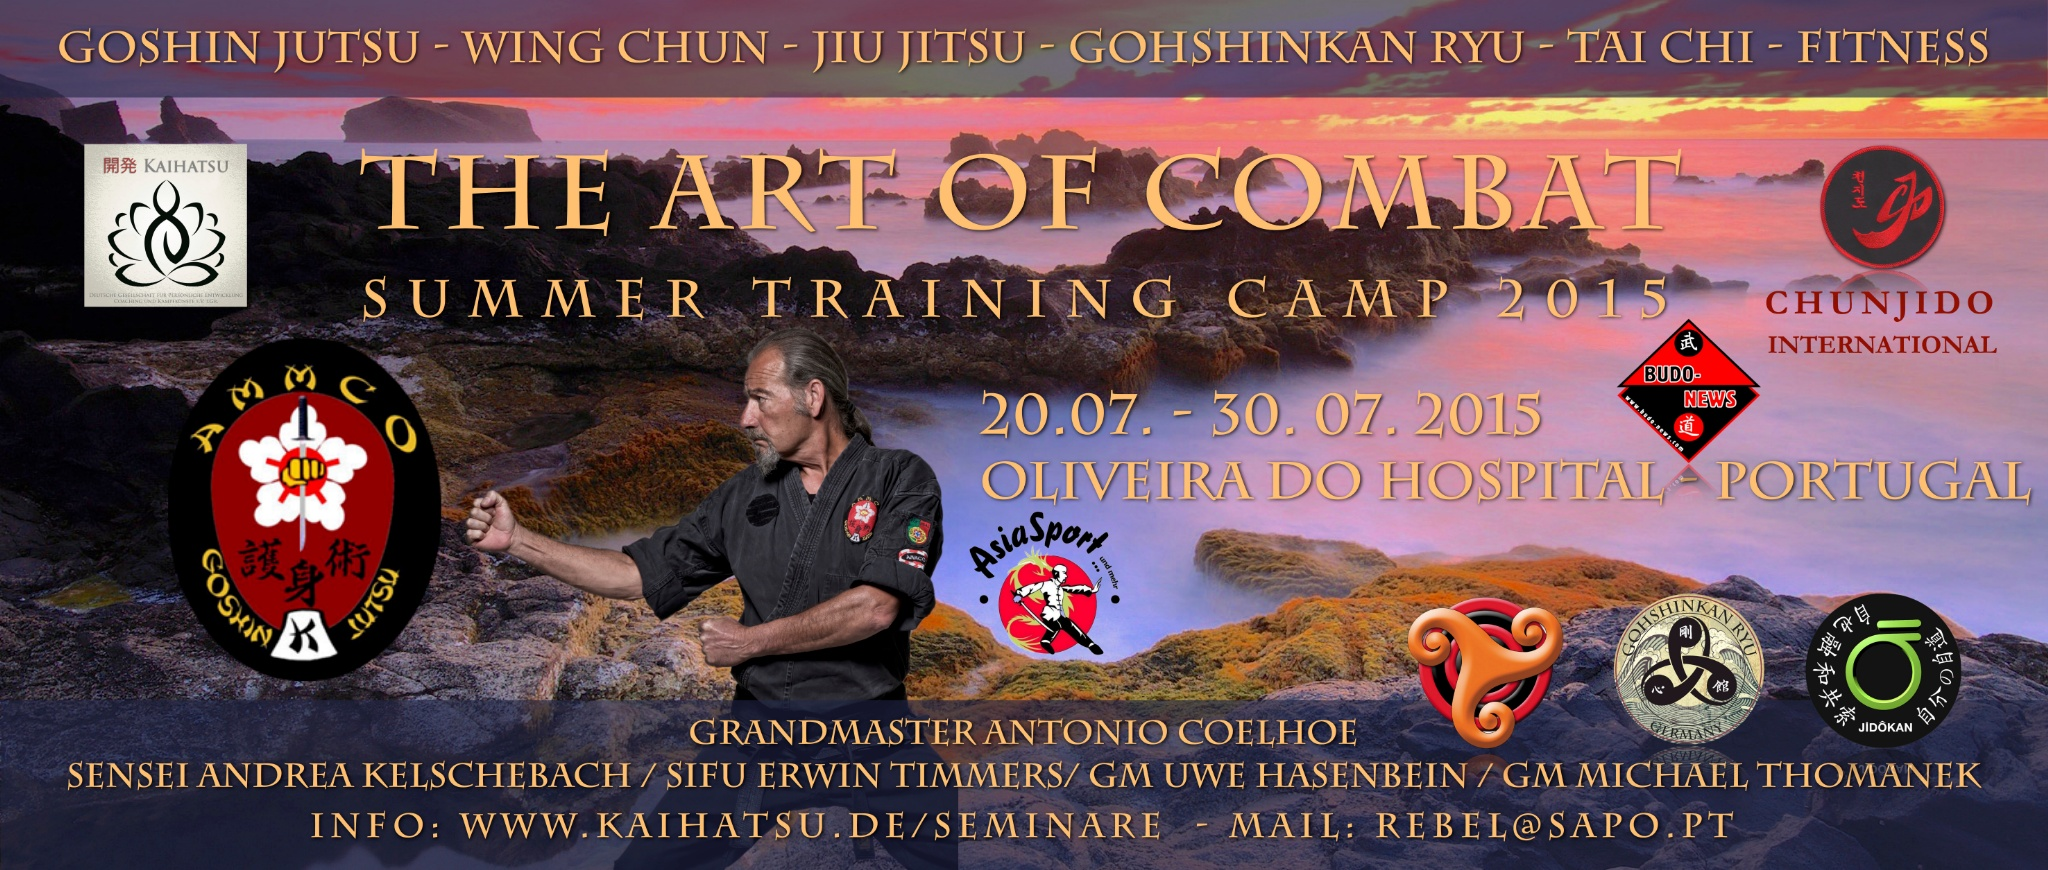 The Art of combat camp 2015 banner _Snapseed